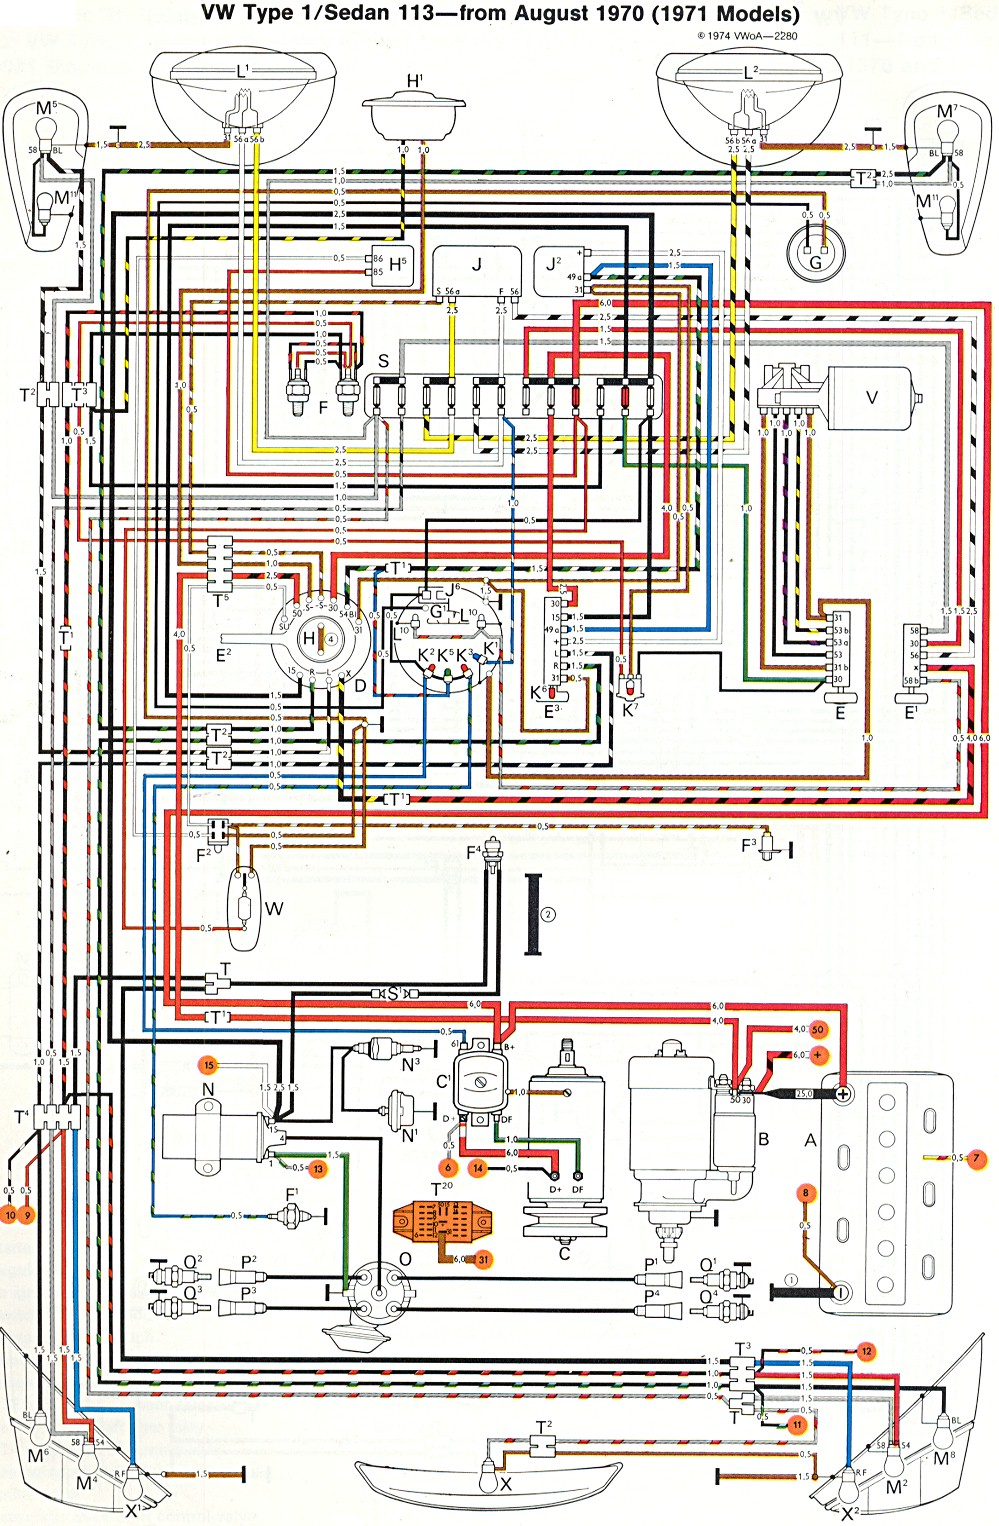 bug_super_71 2000 vw beetle wiring diagram wiring diagram simonand 74 VW Beetle Wiring Diagram at crackthecode.co